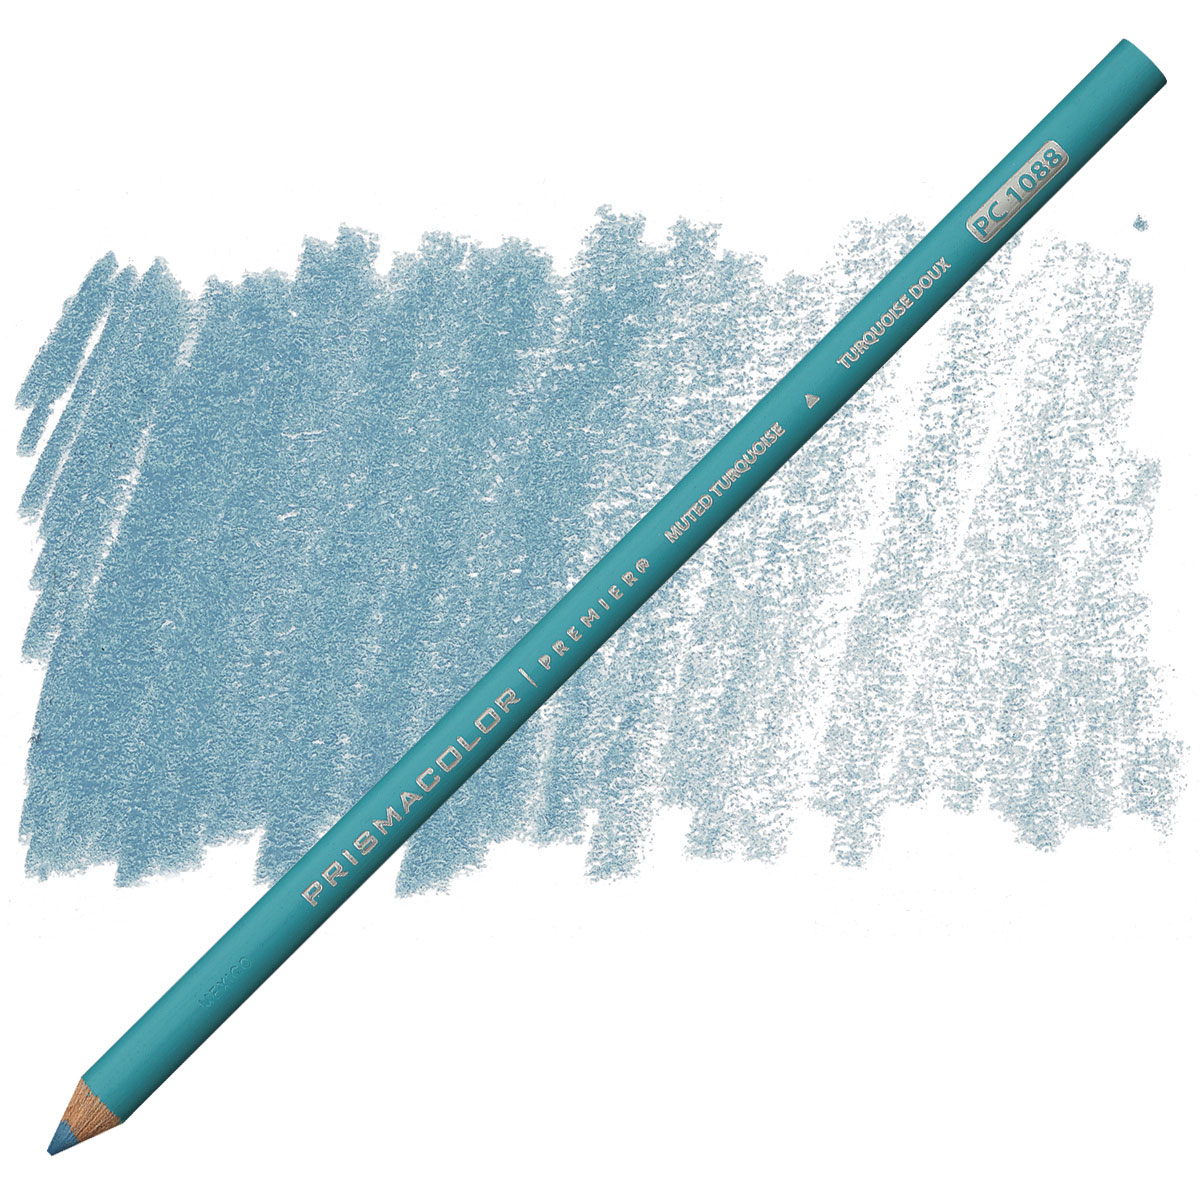 Muted Turquoise 1088